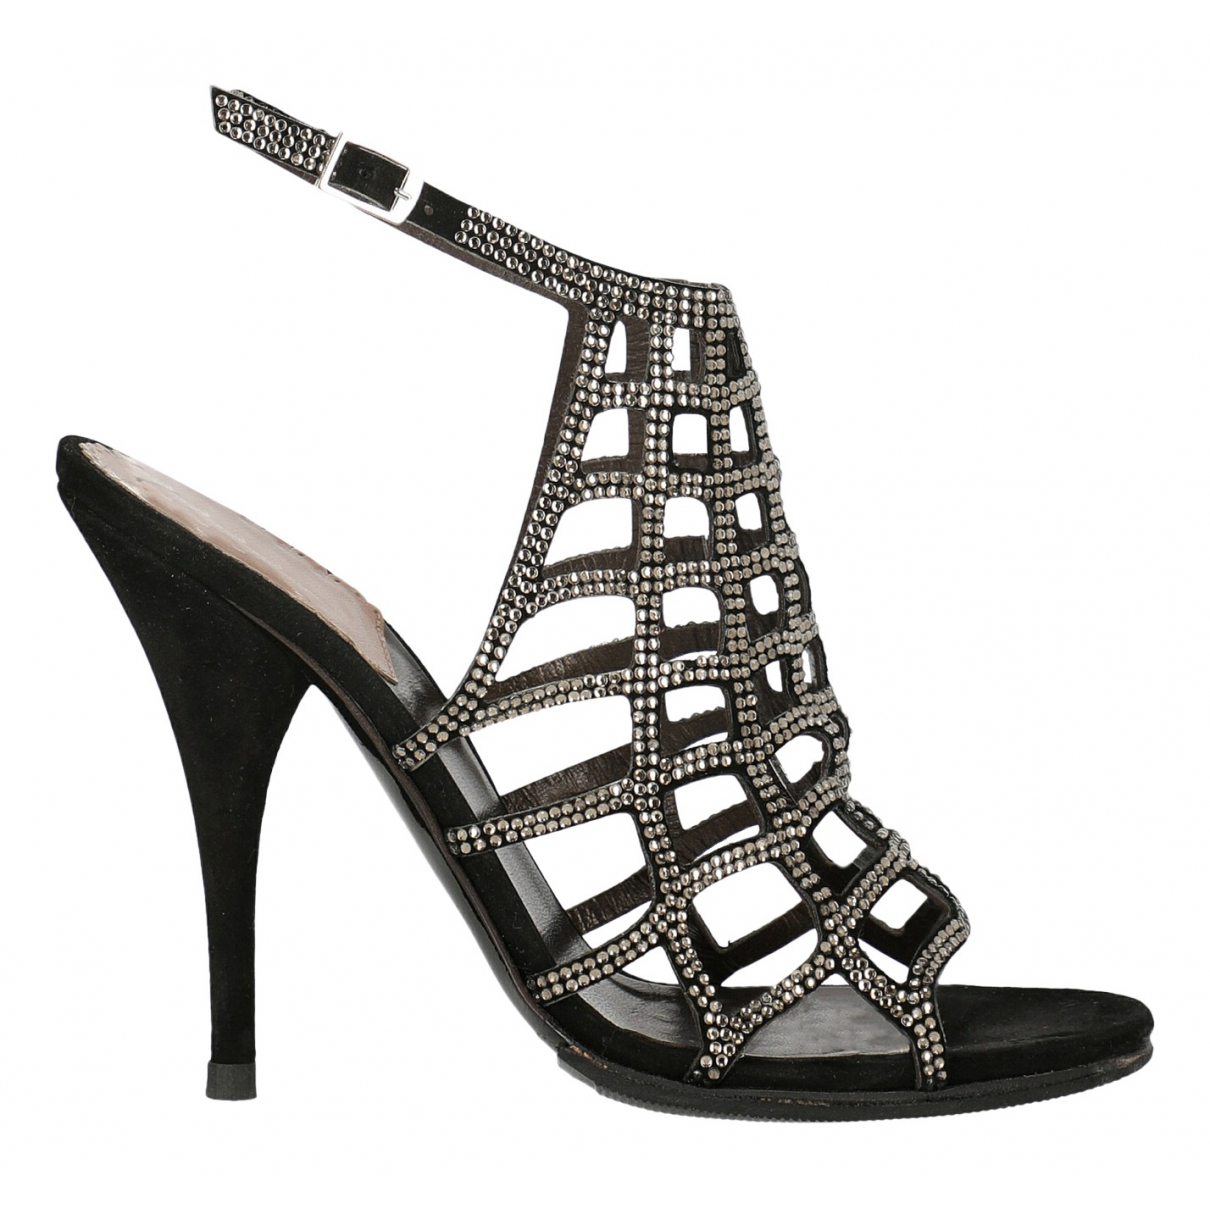 Roberto Cavalli \N Black Leather Sandals for Women 36.5 IT